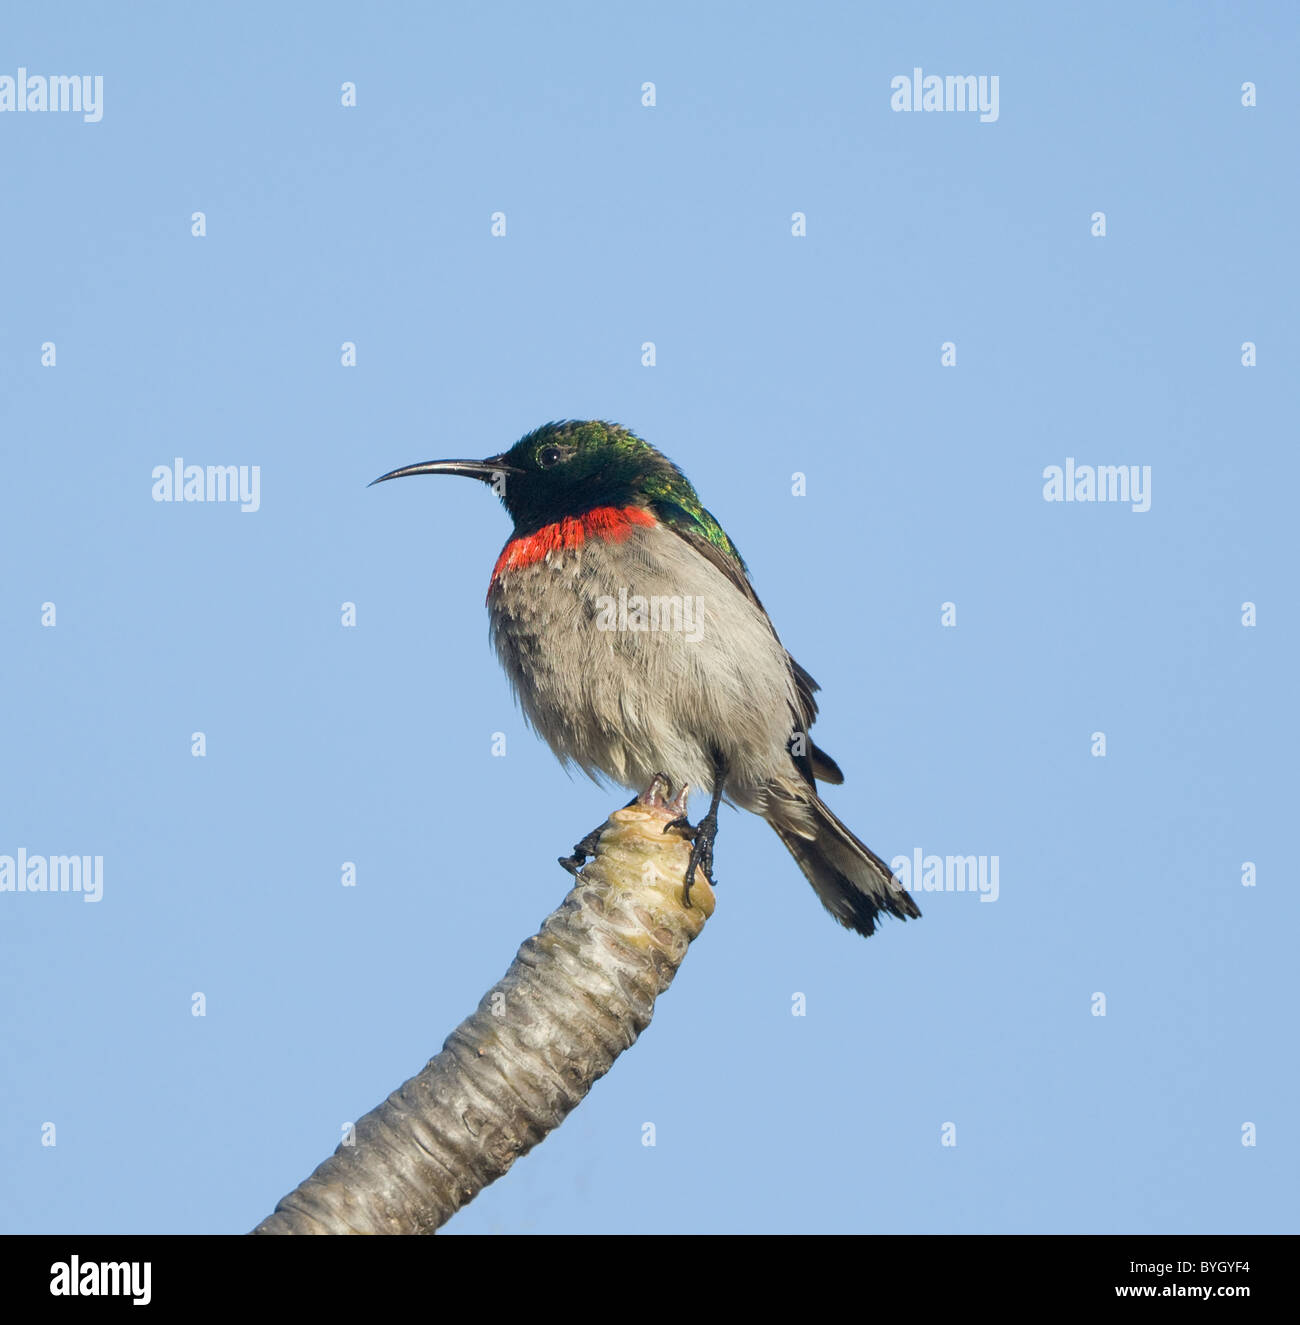 Male Southern Lesser Double-Collared Sunbird (Cinnyris chalybeus), Namaqualand, Northern Cape, South Africa - Stock Image